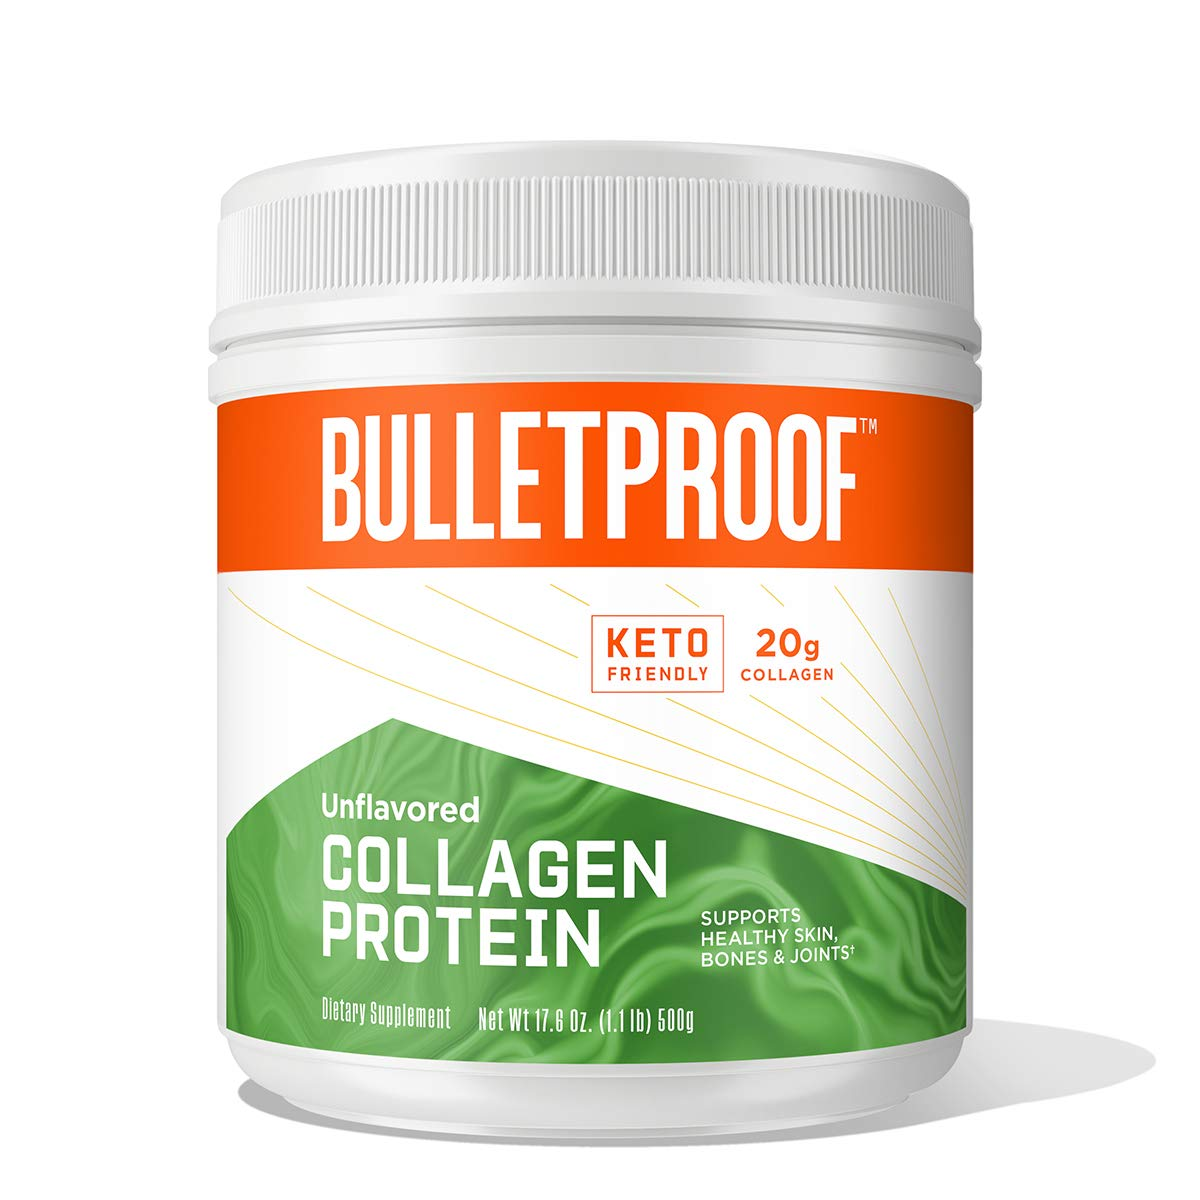 Unflavored Collagen Protein Powder, 18g Protein, 17.6 Oz, Bulletproof Grass Fed Collagen Peptides and Amino Acids for Healthy Skin, Bones and Joints